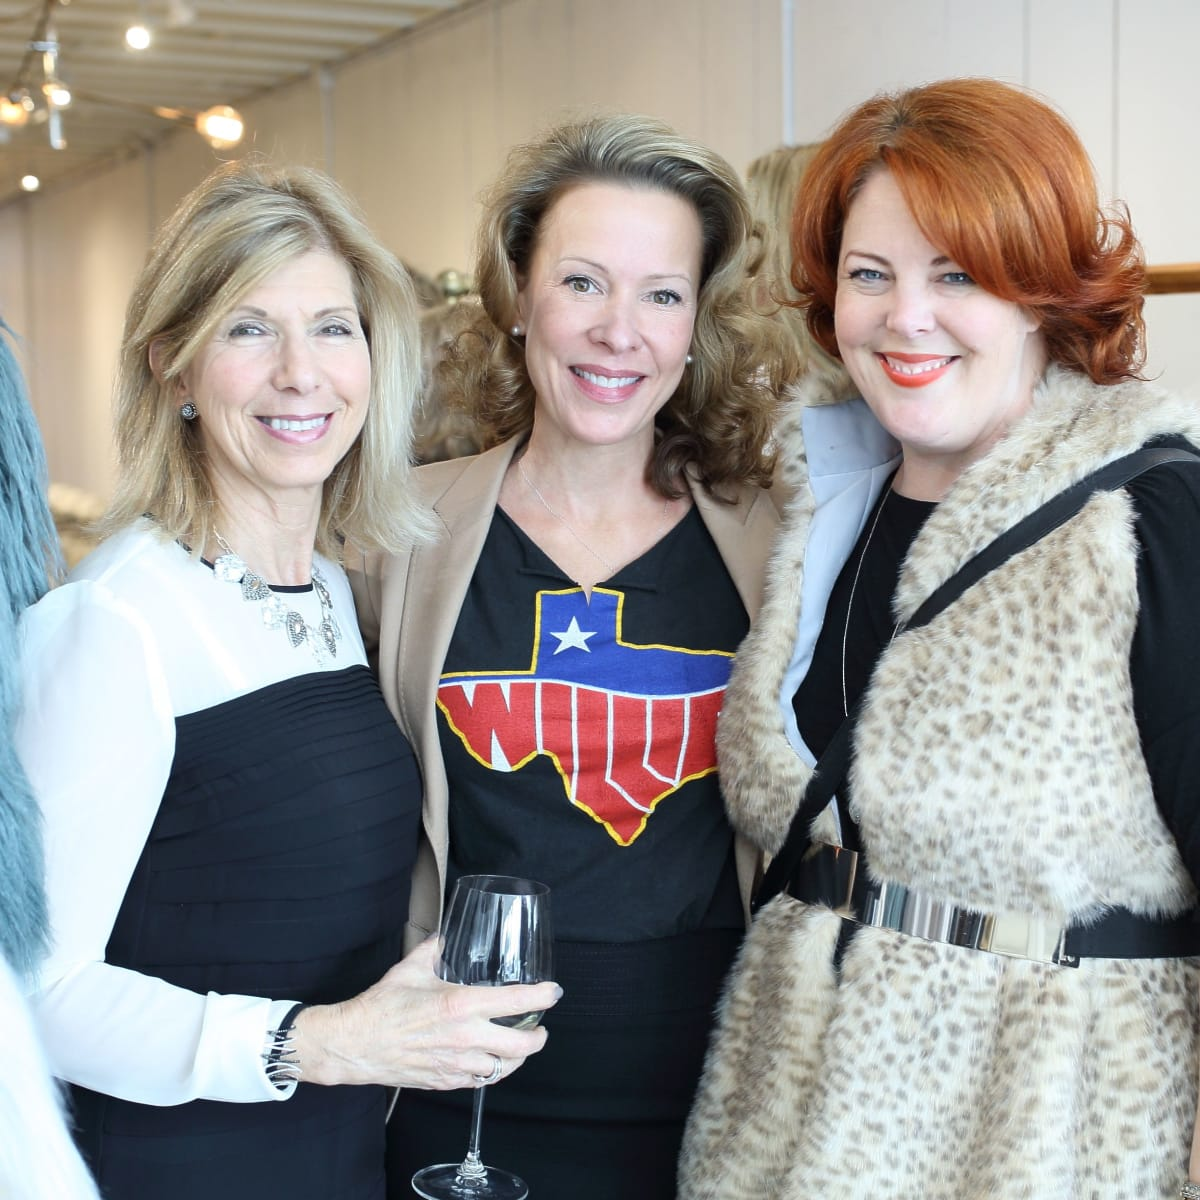 Terri Roth, Tammy Lahourcade Collins, Cara Crafton at Miles David fashion show